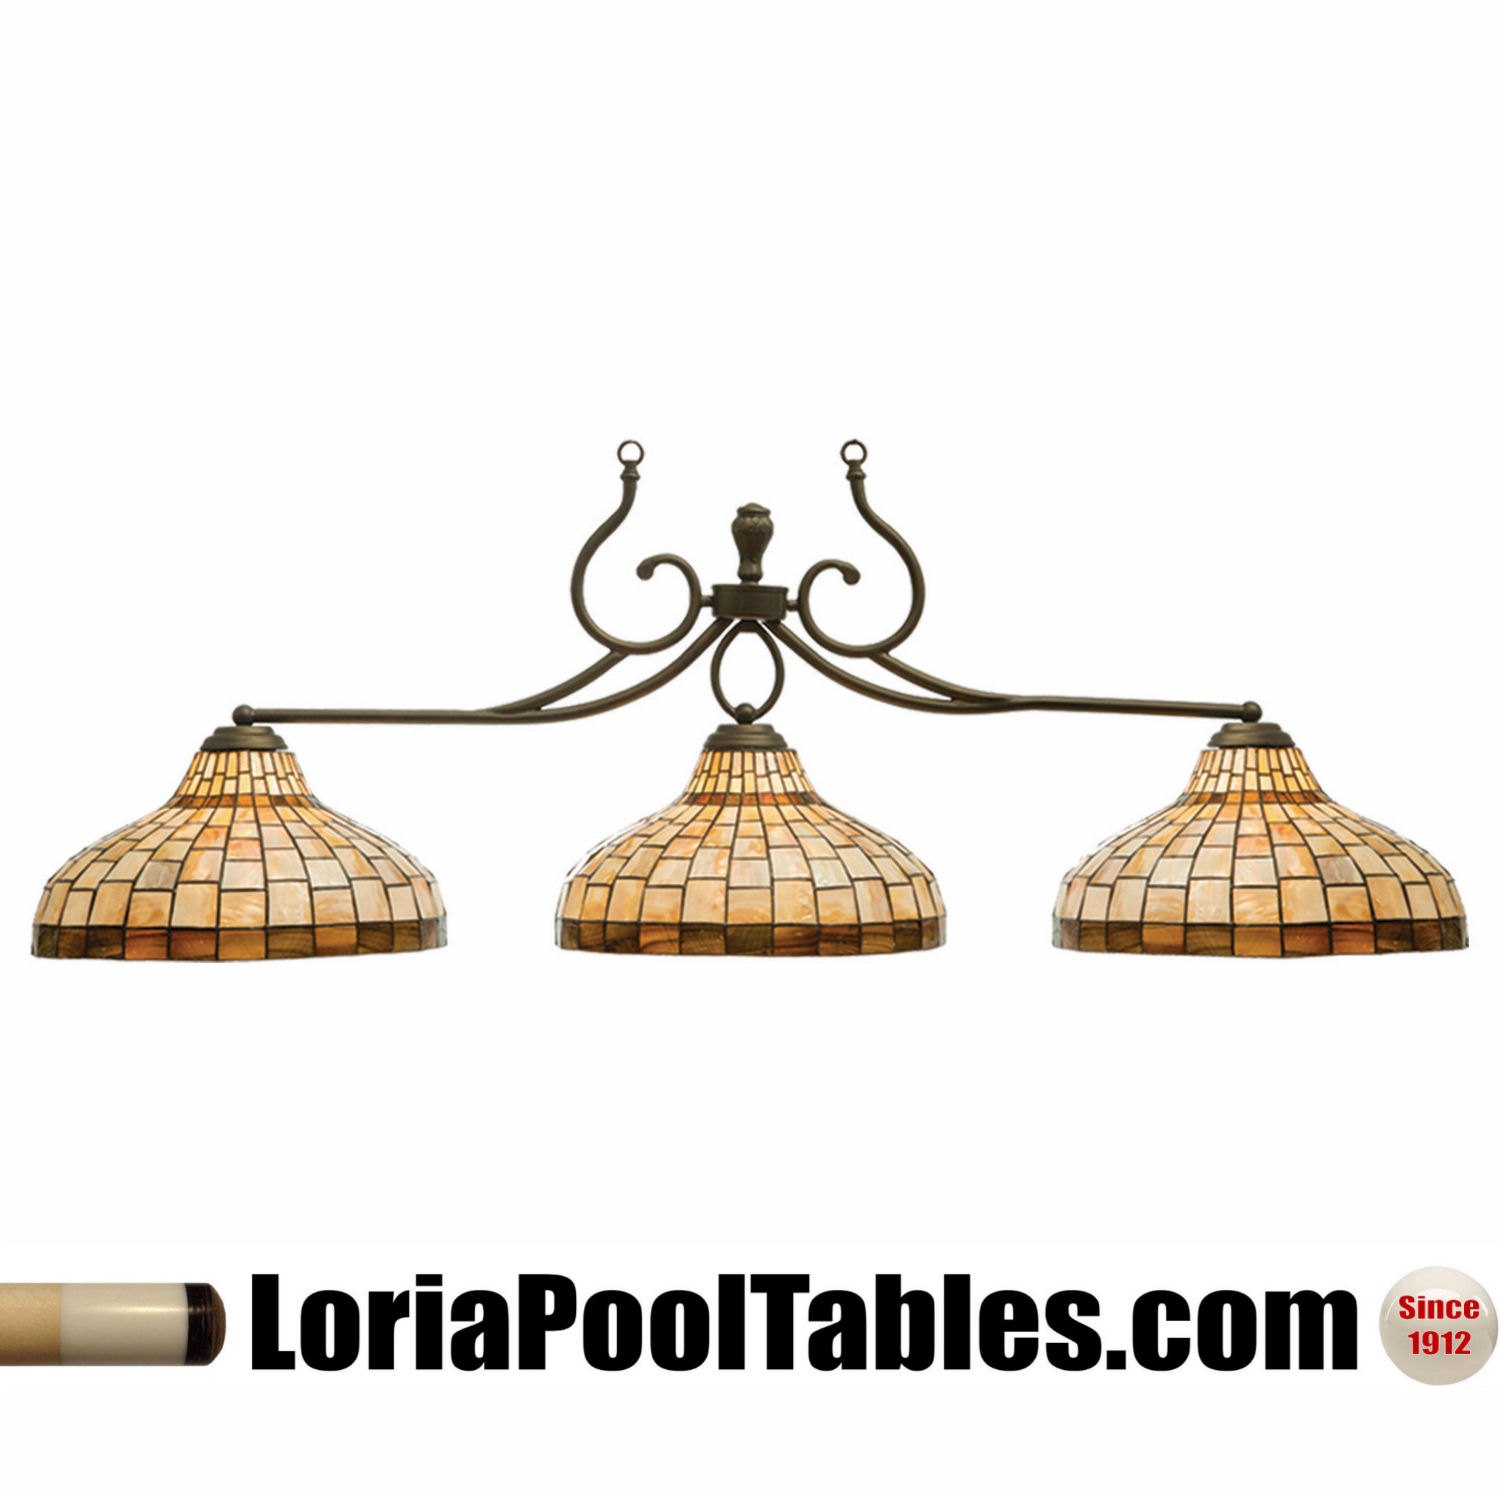 Stained Glass Billiard Pool Table Light Fixture: Carolina Stained Glass Pool Table Light Fixture @ Loria Awards